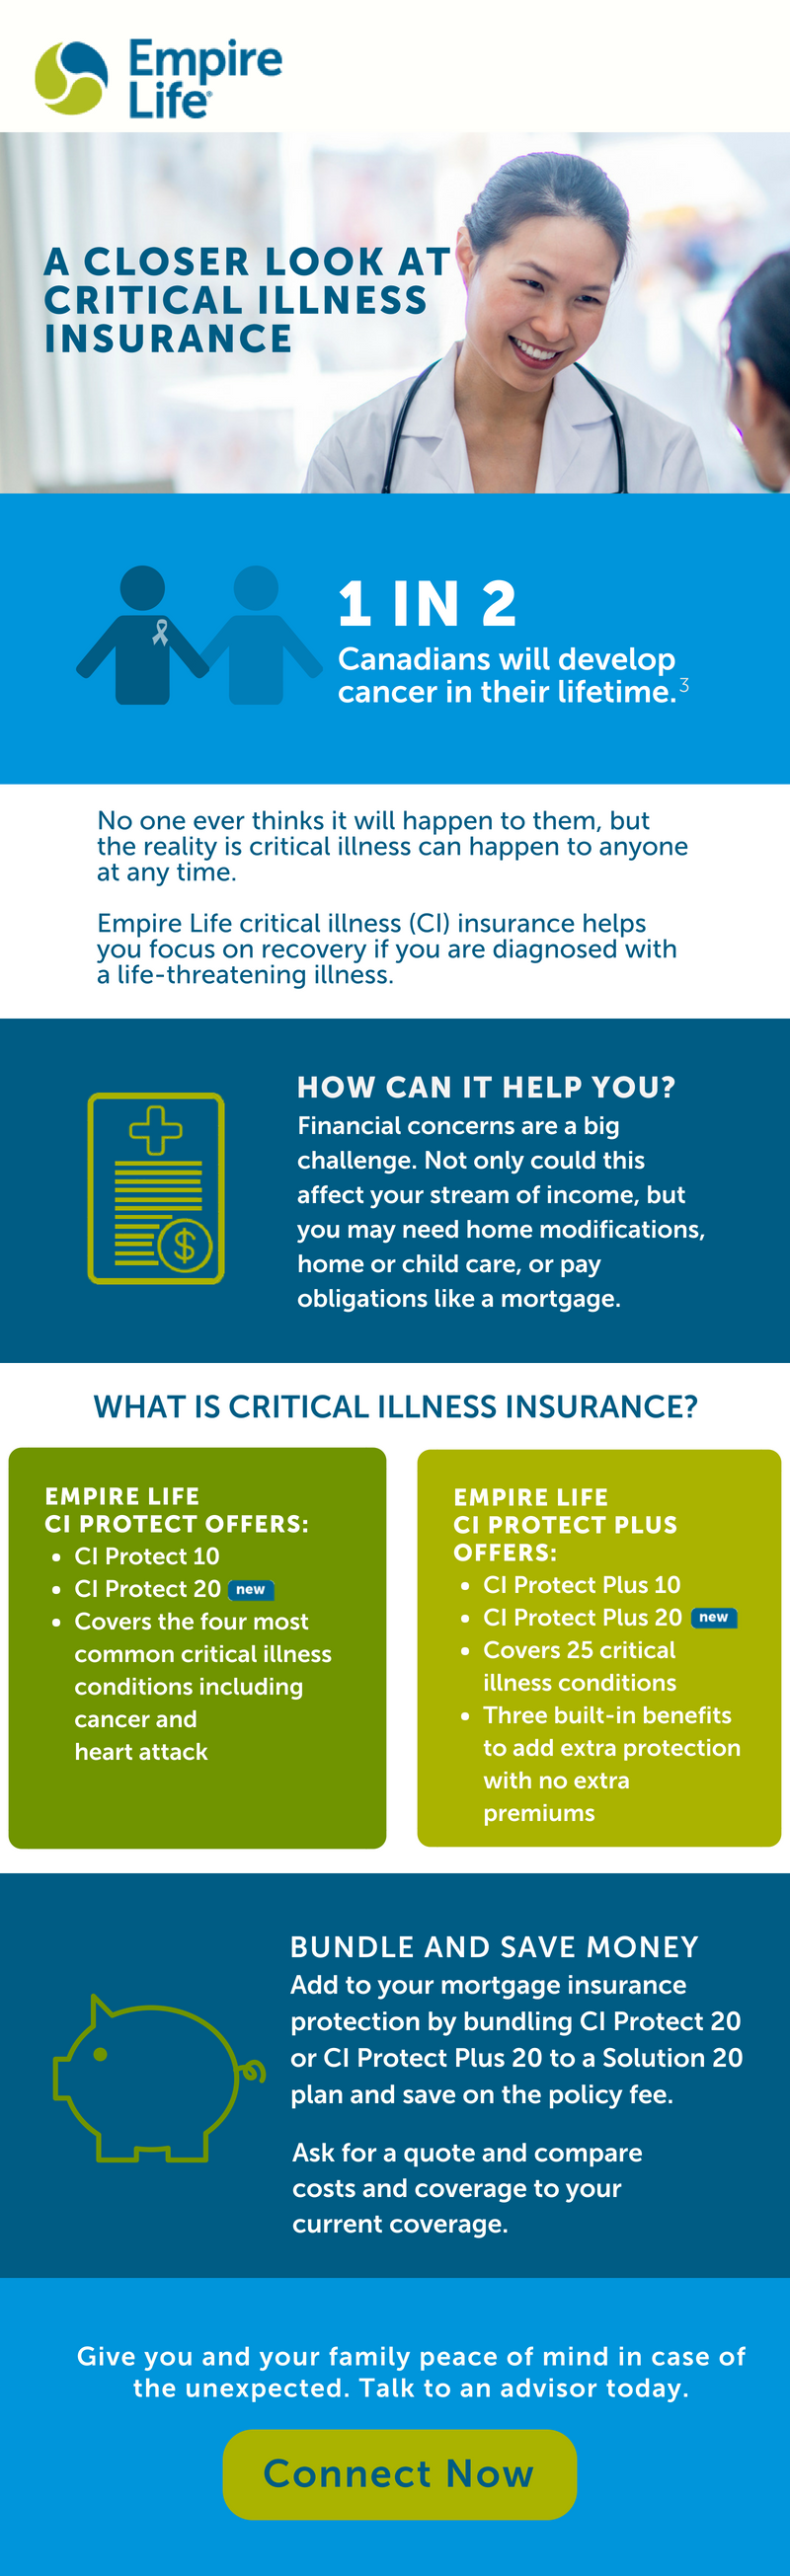 A closer look at critical illness insurance